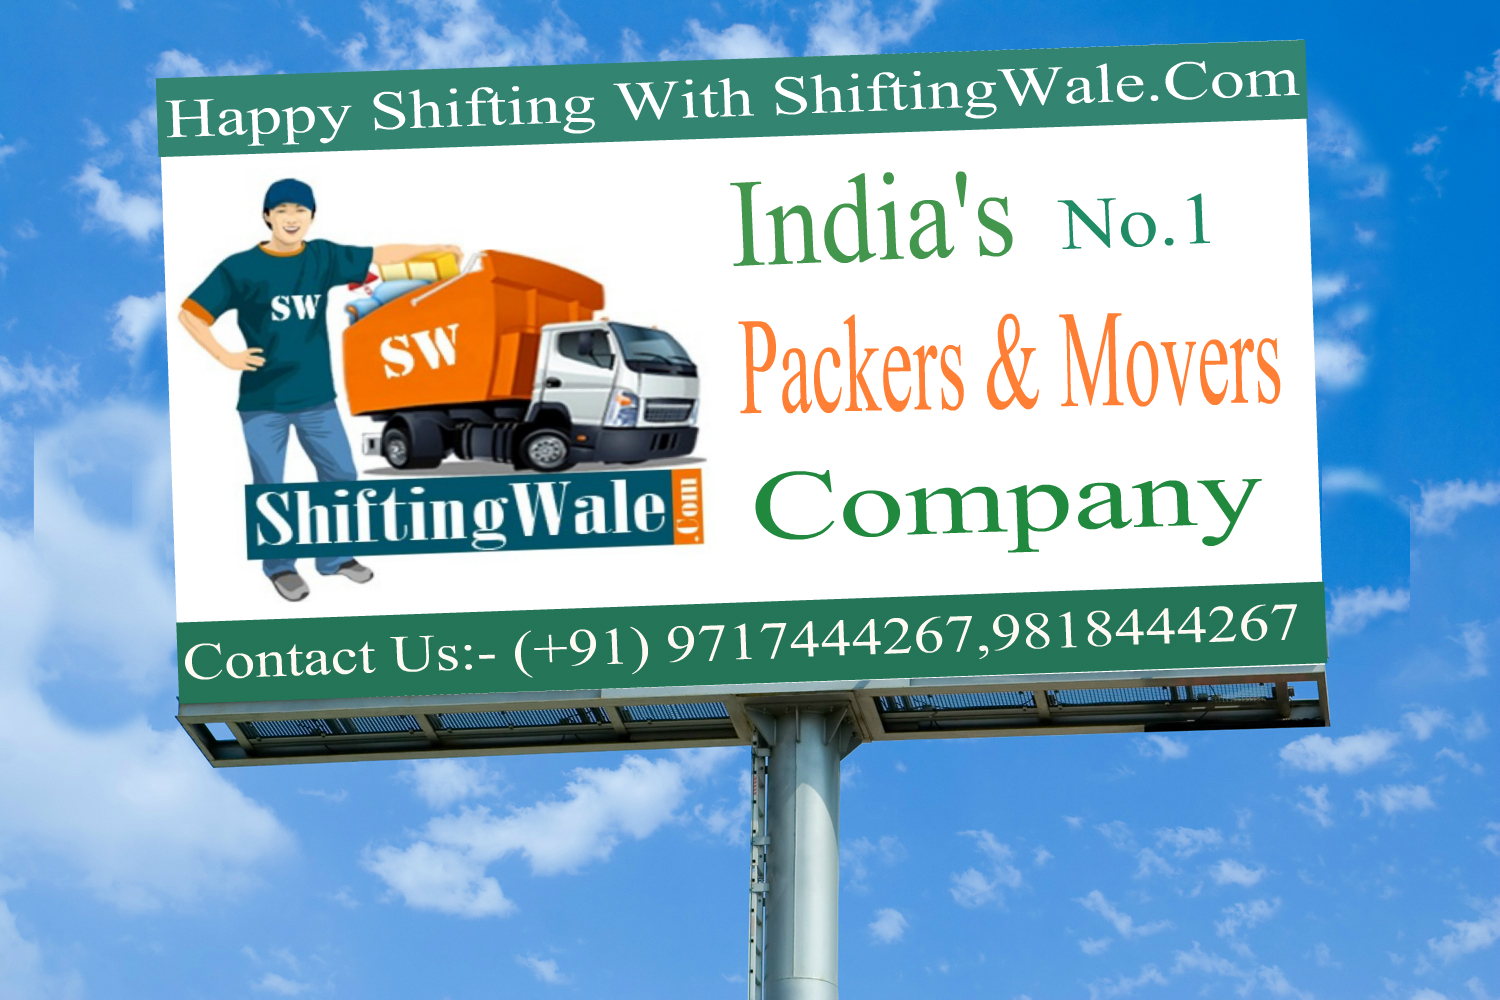 Top and Best Household Goods Car Bike Relocation Service Provider in Mumbai Pune Goa Navi Mumbai to Delhi Noida Gurgaon